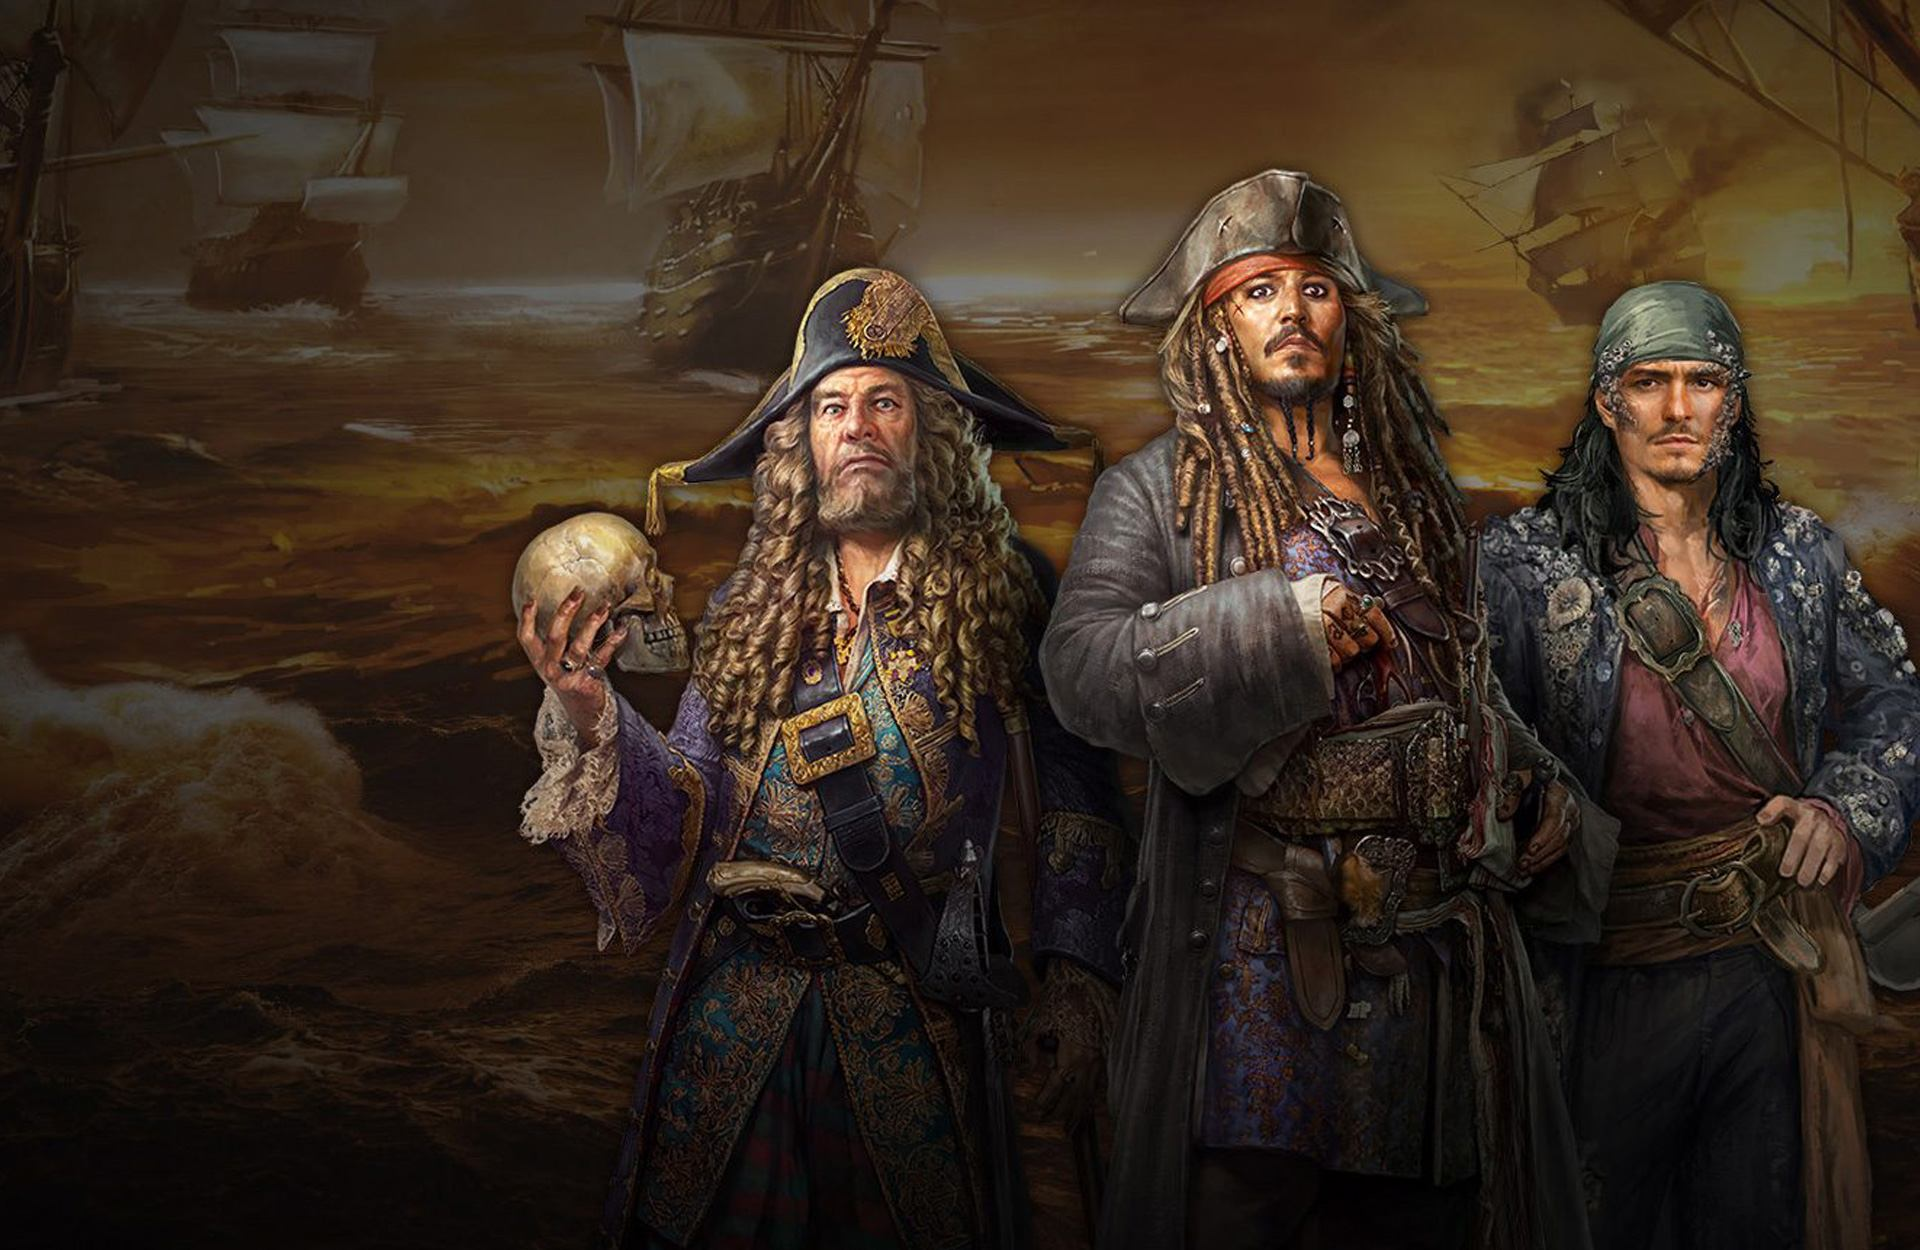 Download Pirates of the Caribbean: ToW on PC with BlueStacks